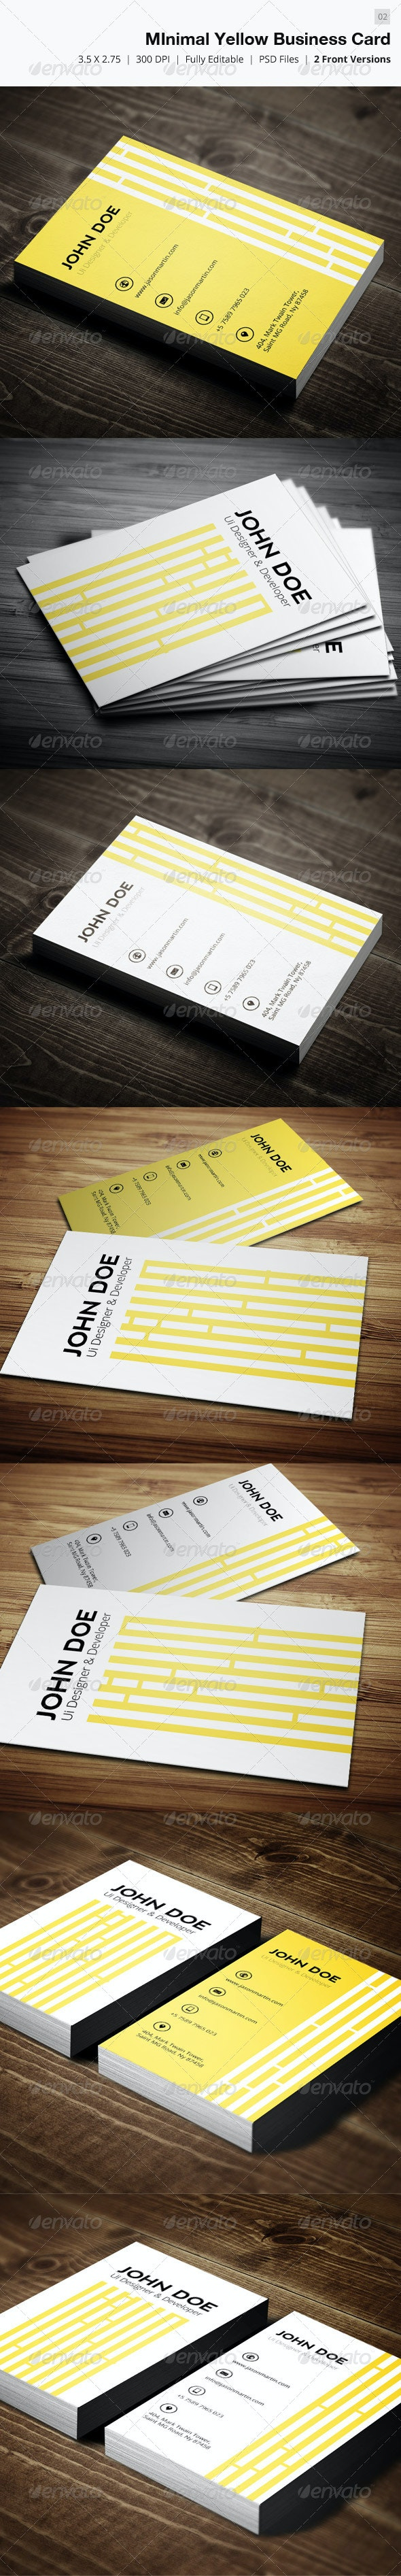 Minimal Yellow Business Card - 02 - Creative Business Cards